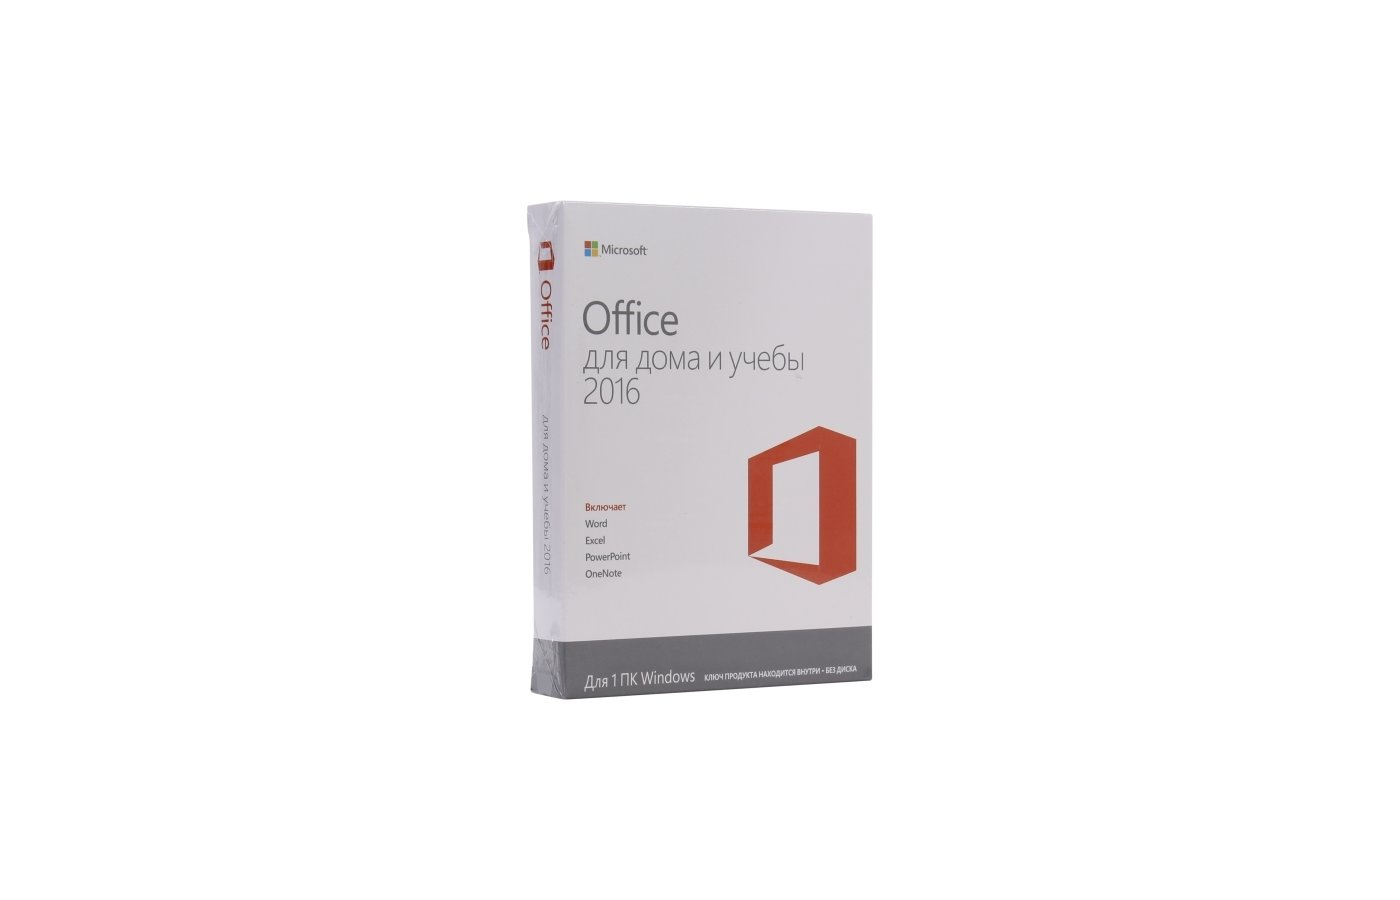 Компьютерное ПО Microsoft Office Home and Student 2016 No Skype Rus Only Medialess (79G-04713)